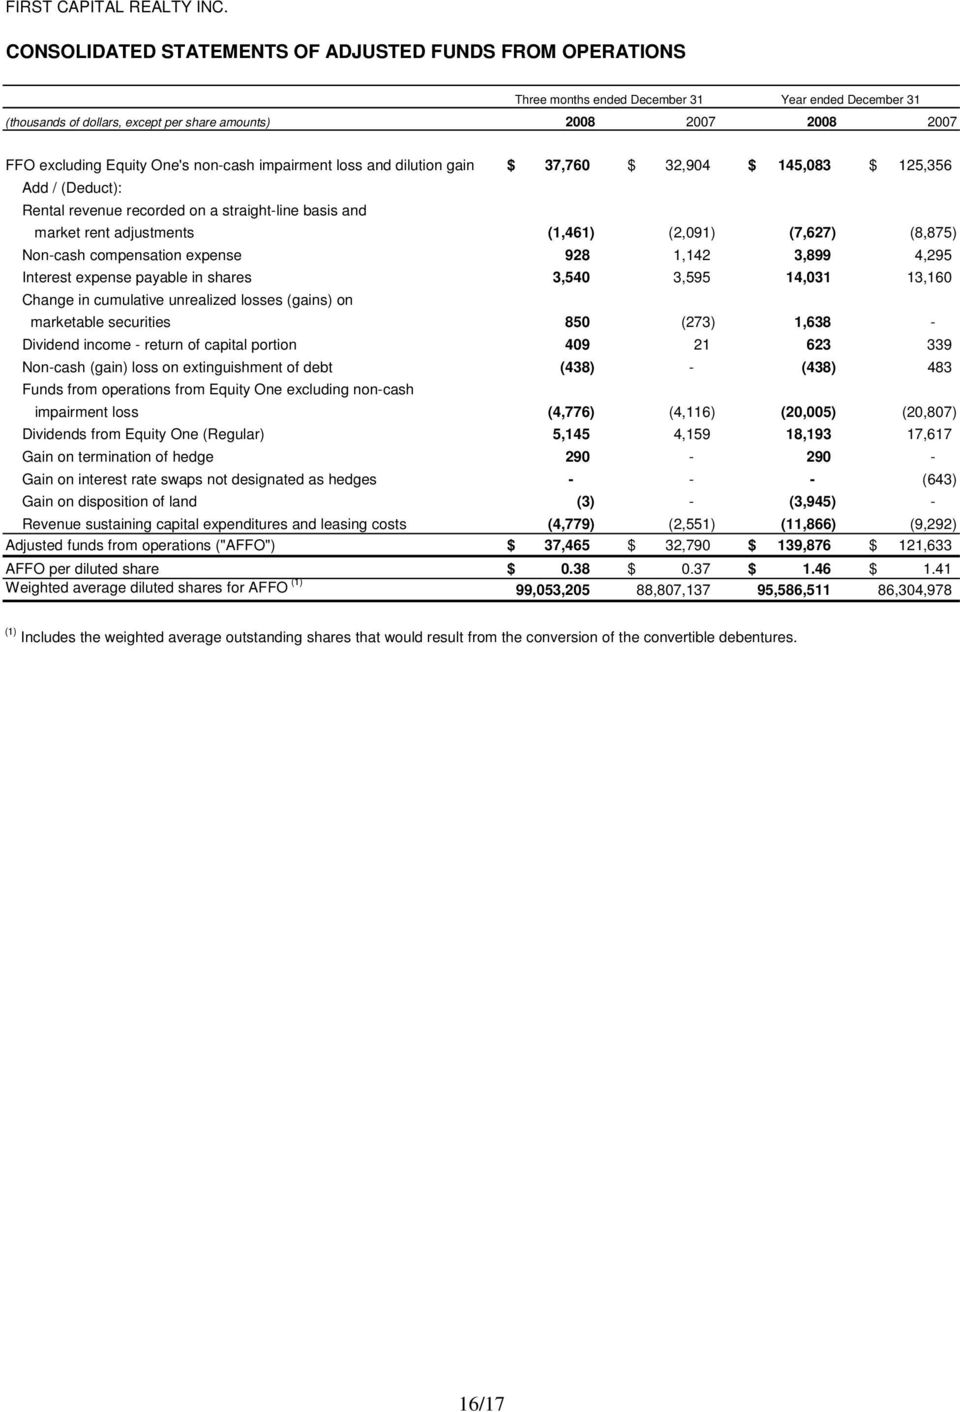 Equity One's non-cash impairment loss and dilution gain $ 37,760 $ 32,904 $ 145,083 $ 125,356 Add / (Deduct): Rental revenue recorded on a straight-line basis and market rent adjustments (1,461)